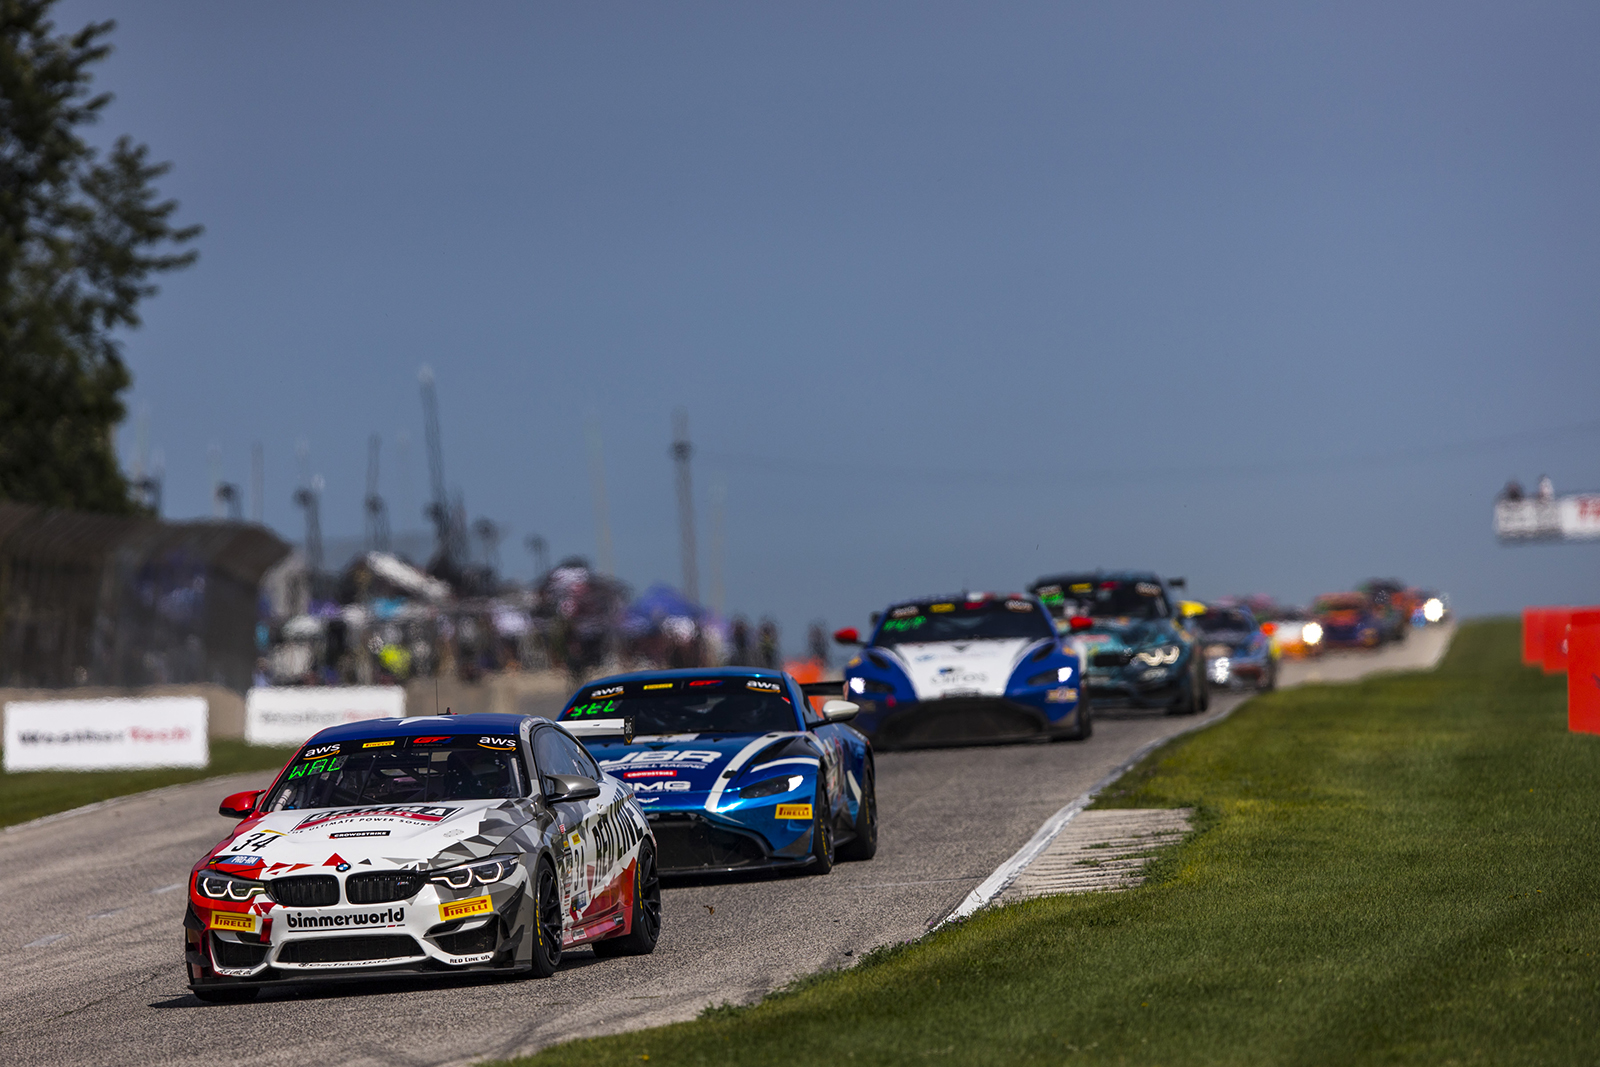 BimmerWorld M4 GT4 leading the pack at Road America